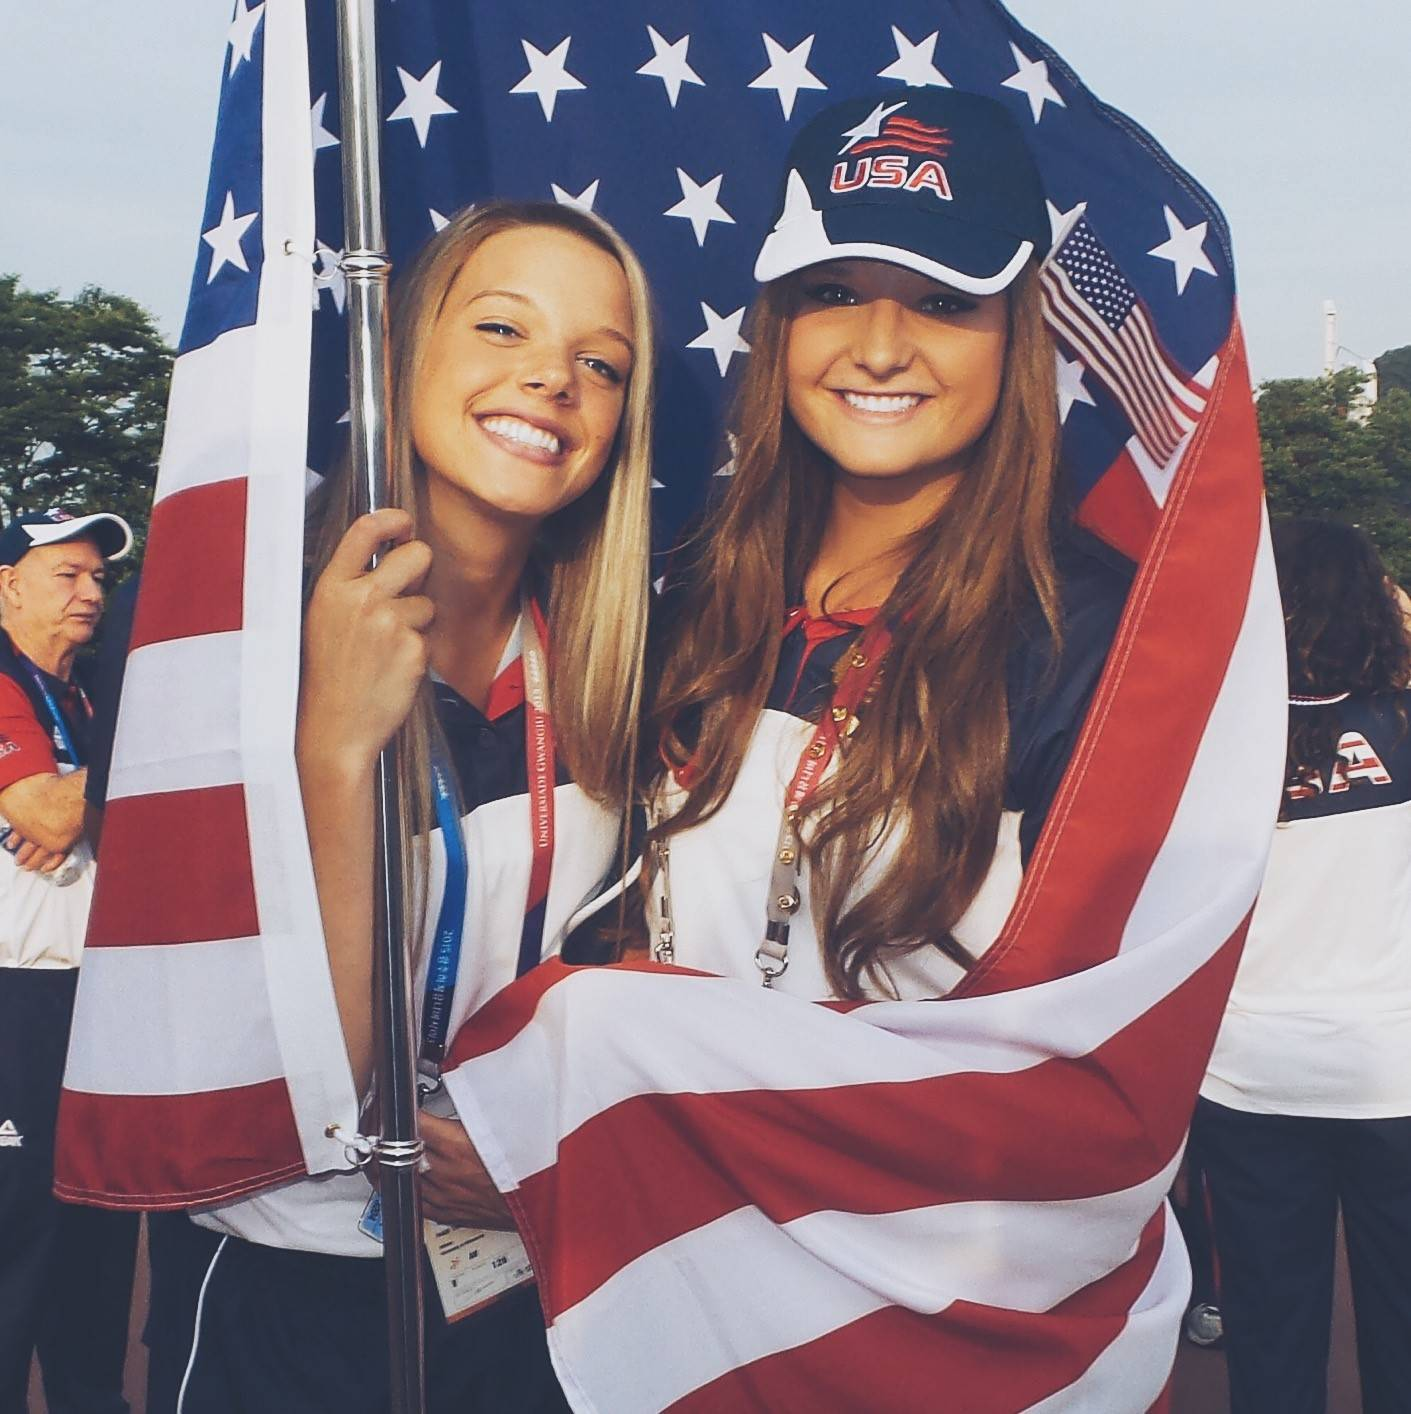 Nicole Walch and Paige Tapp.